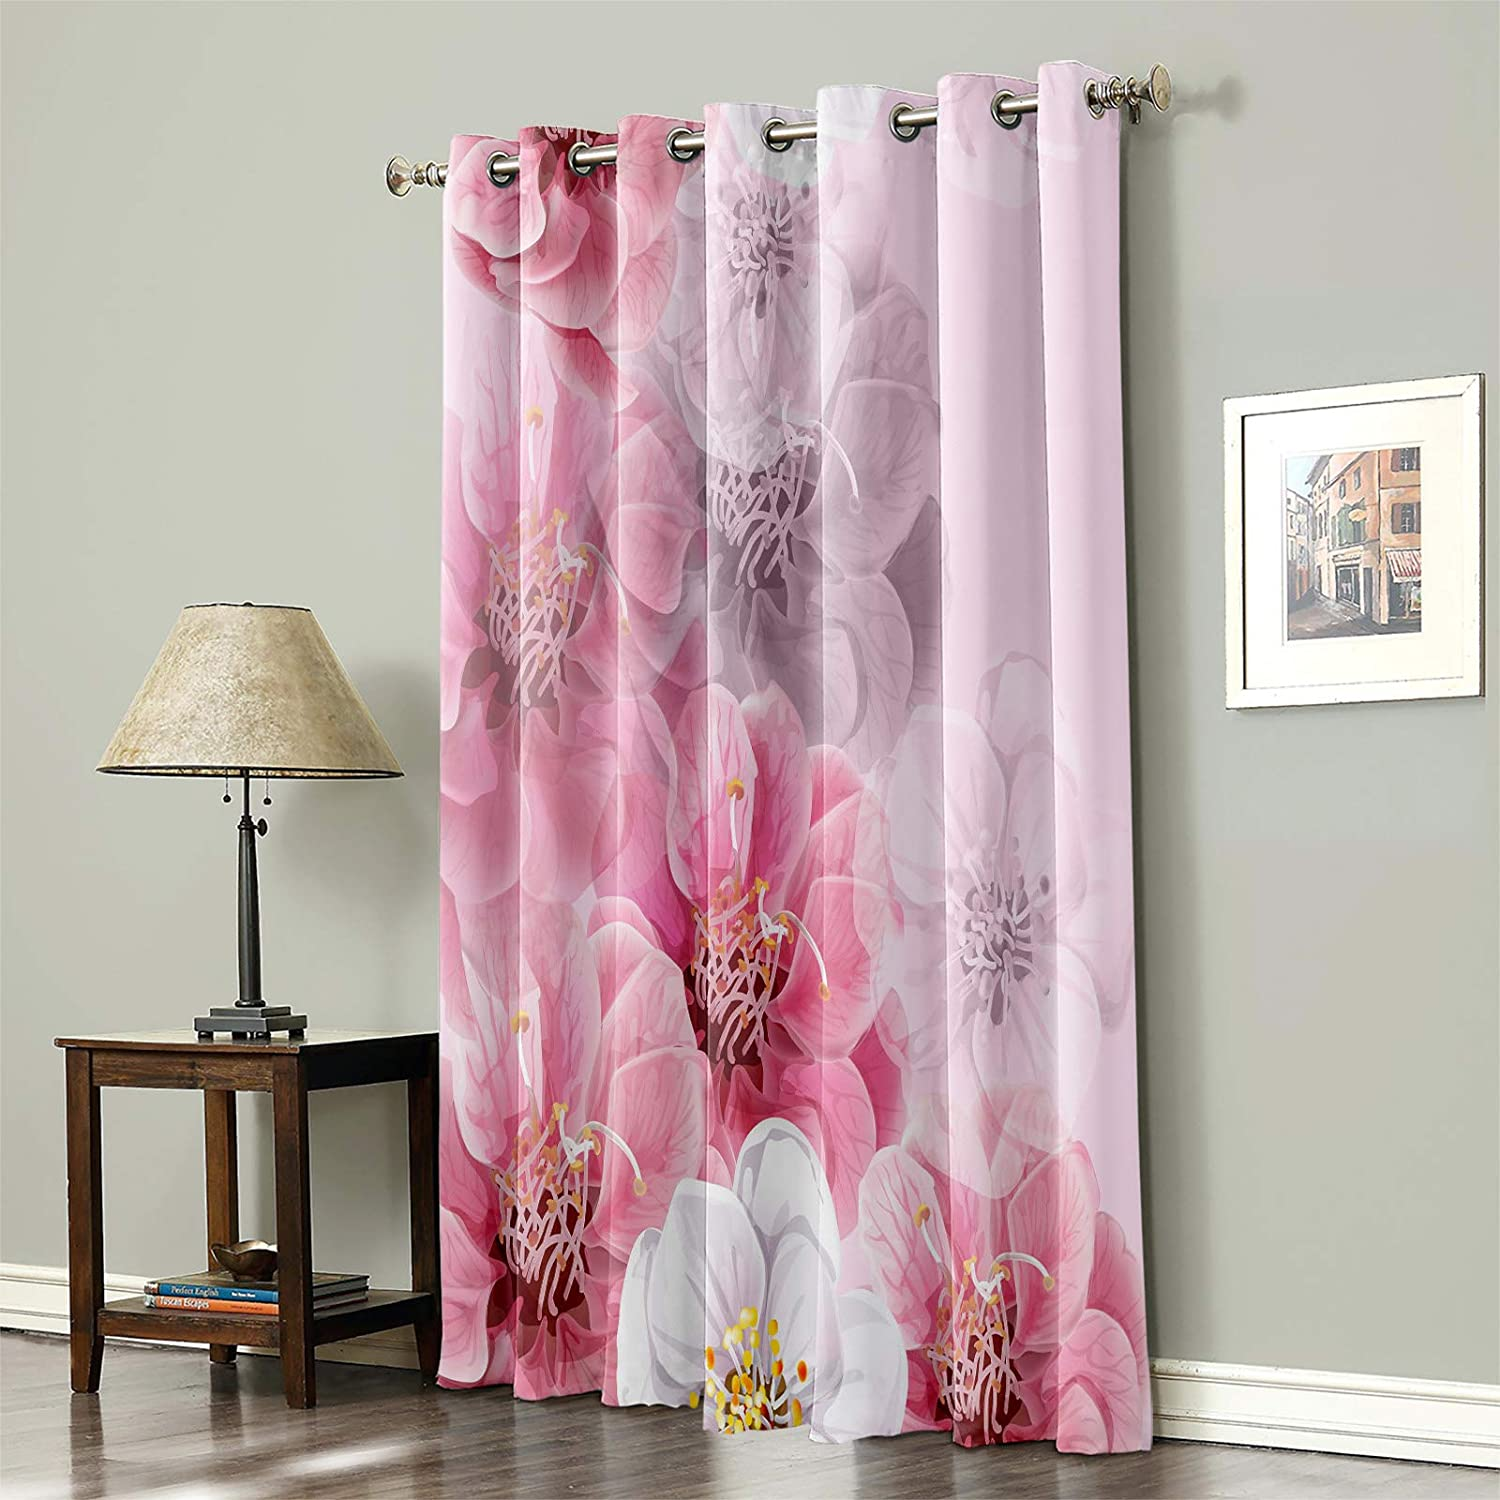 Blackout 高級品 Curtain for Bedroom Flowers Pink Spring Thermal 正規店 Insula